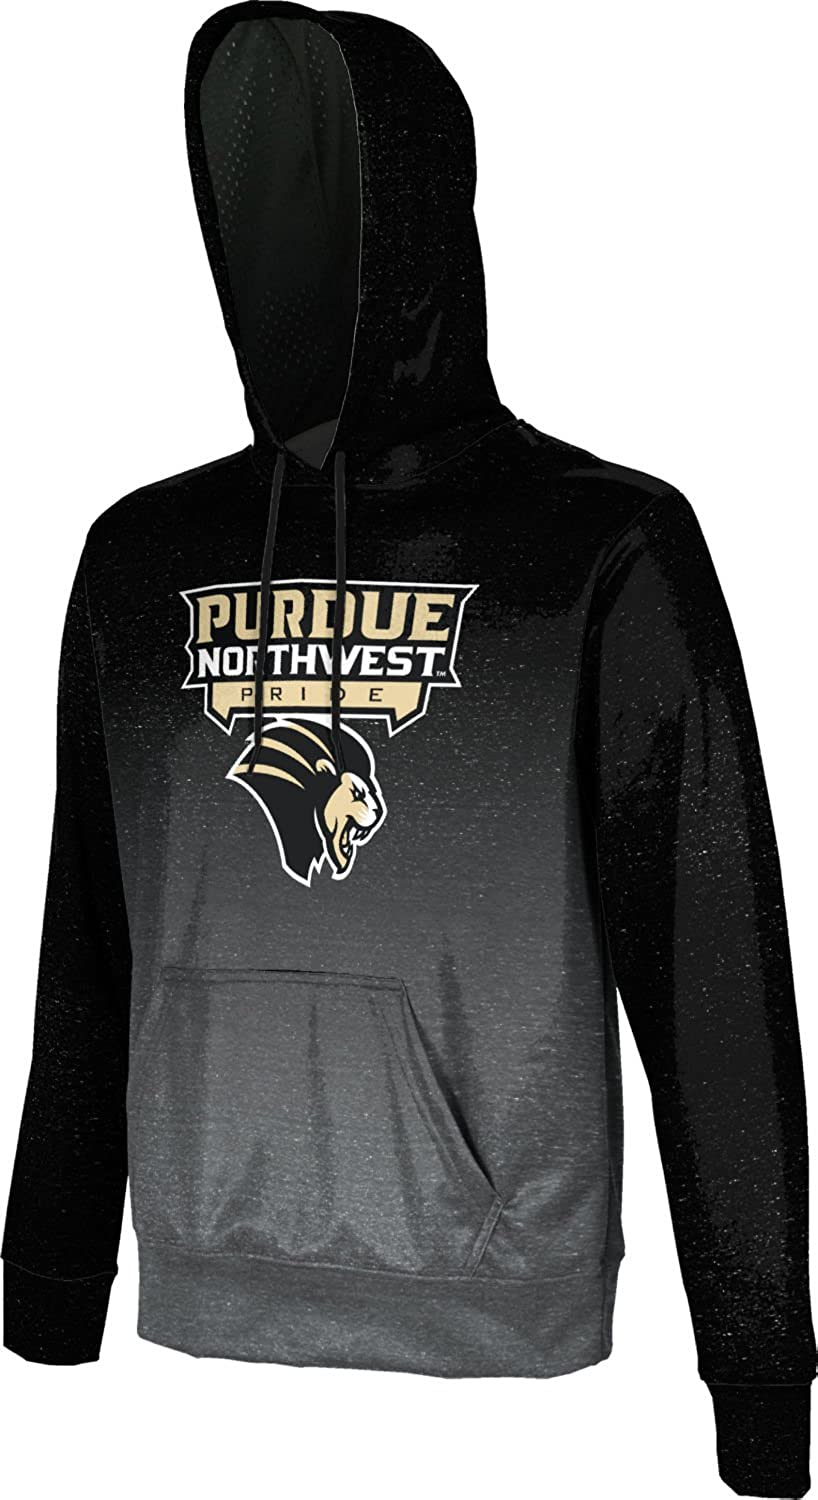 Ombre Purdue University Northwest Mens Pullover Hoodie School Spirit Sweatshirt